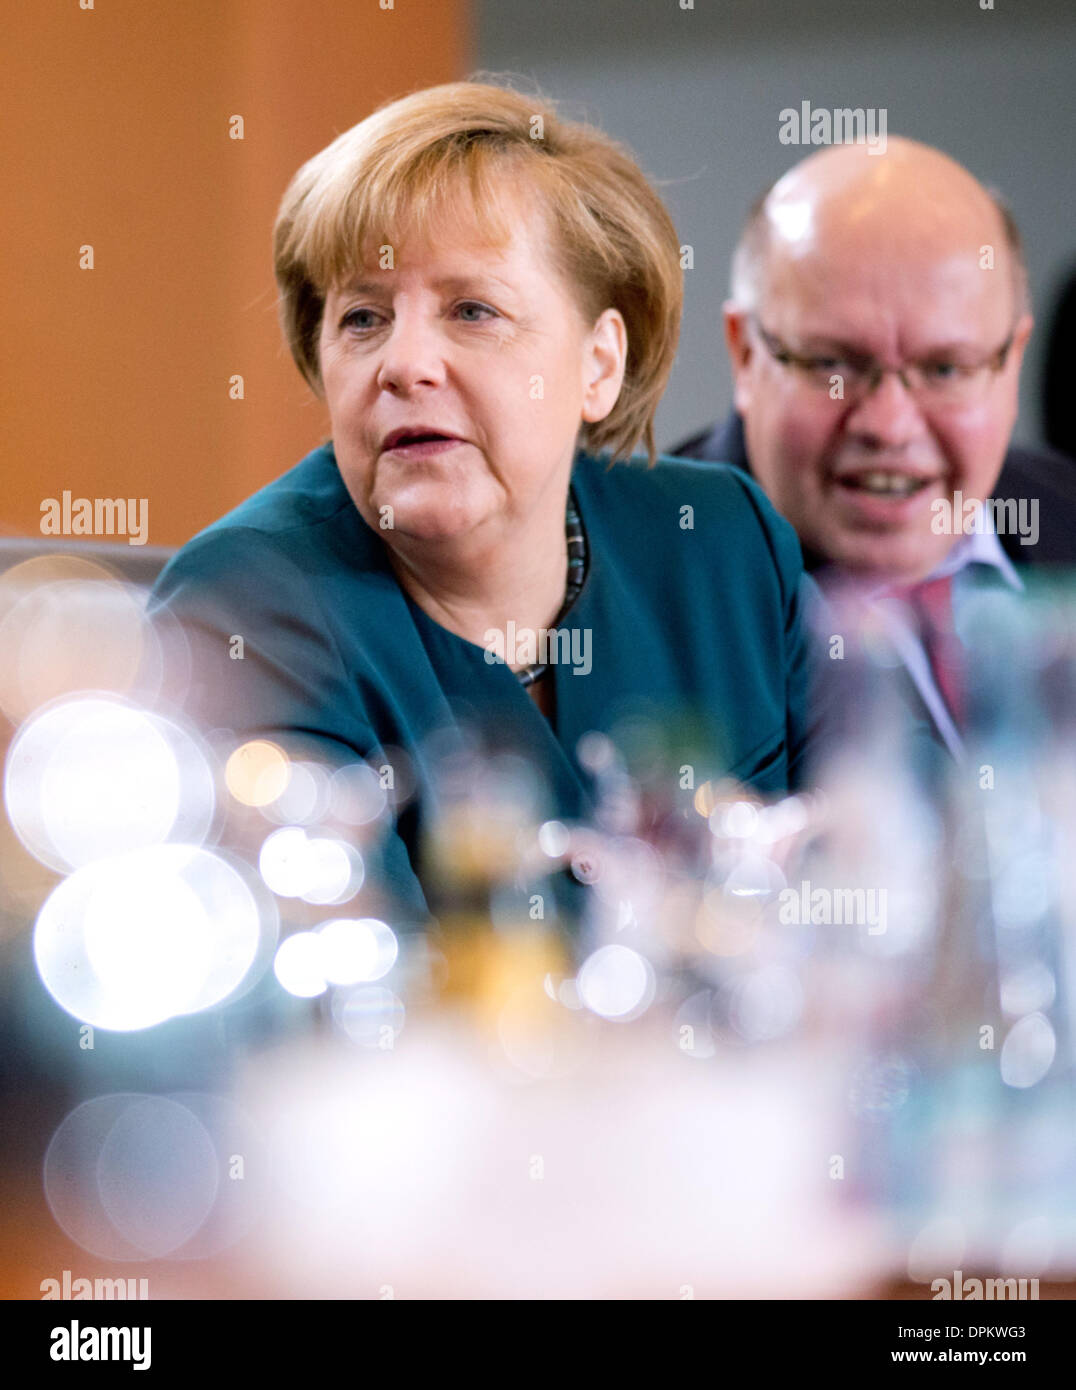 Berlin, Germany. 15th Jan, 2014. German Chancellor Angela Merkel (CDU) sits next to Chief of Staff of the German Stock Photo